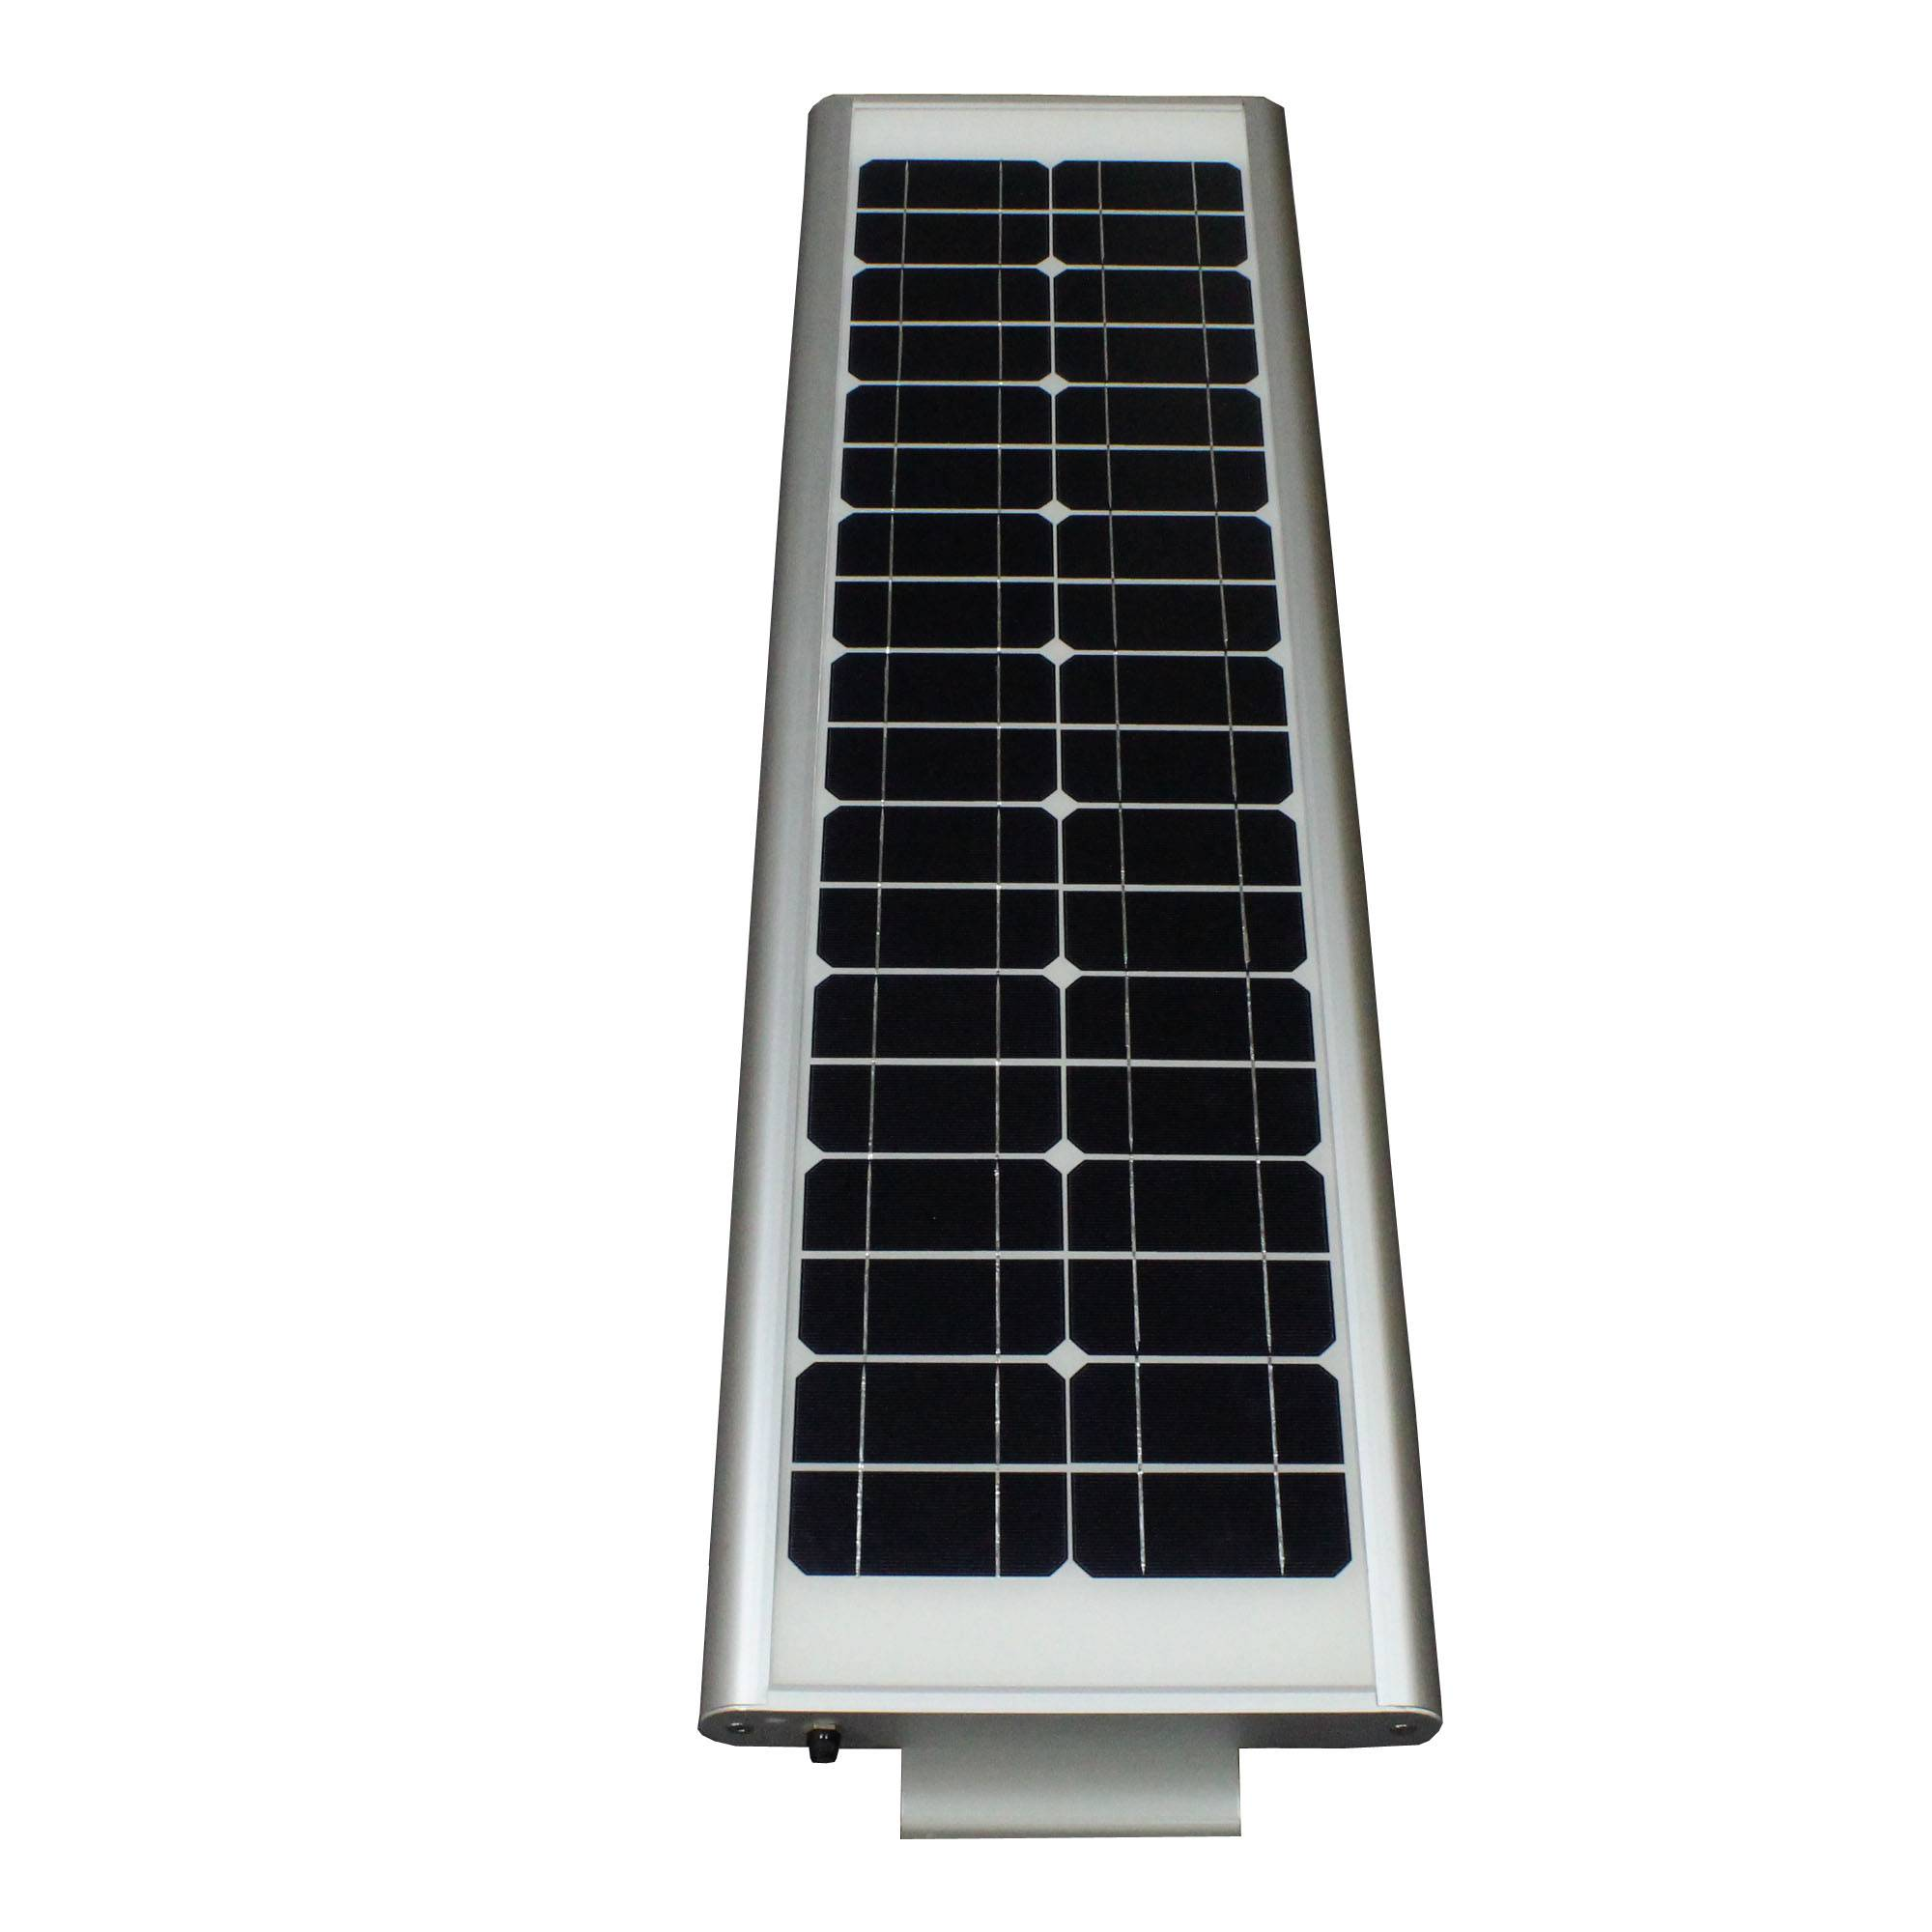 40W LED solar street lights with All-in-one design